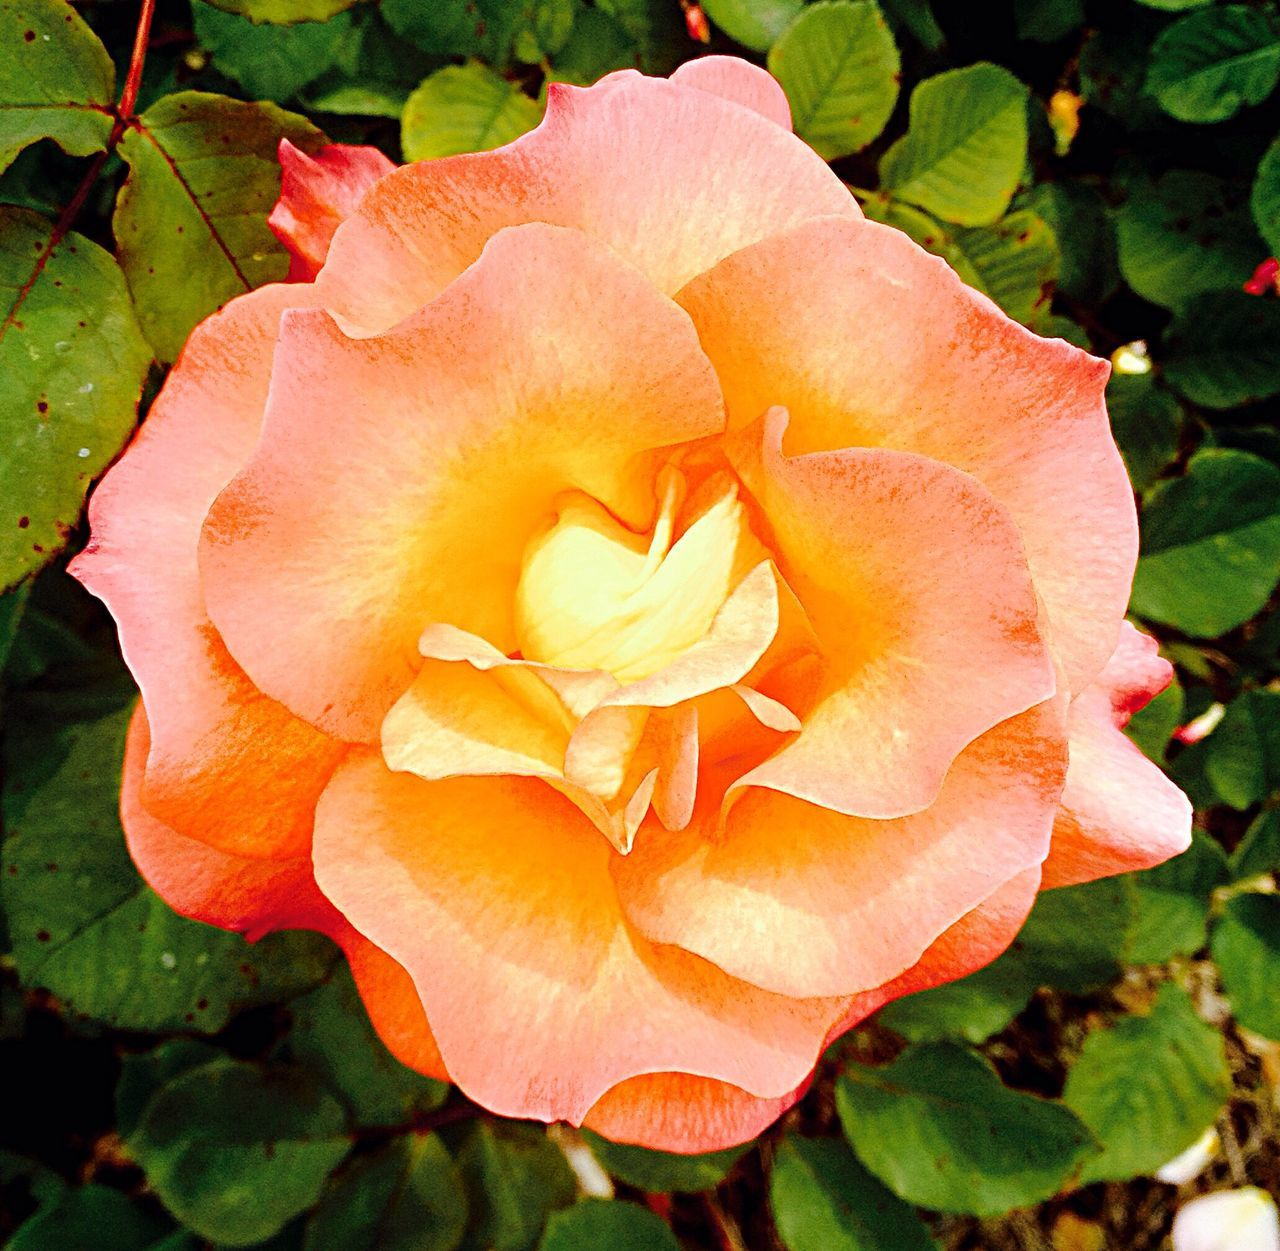 Peach Rose Park Peach Rose Leaves California The Essence Of Summer Colour Of Life